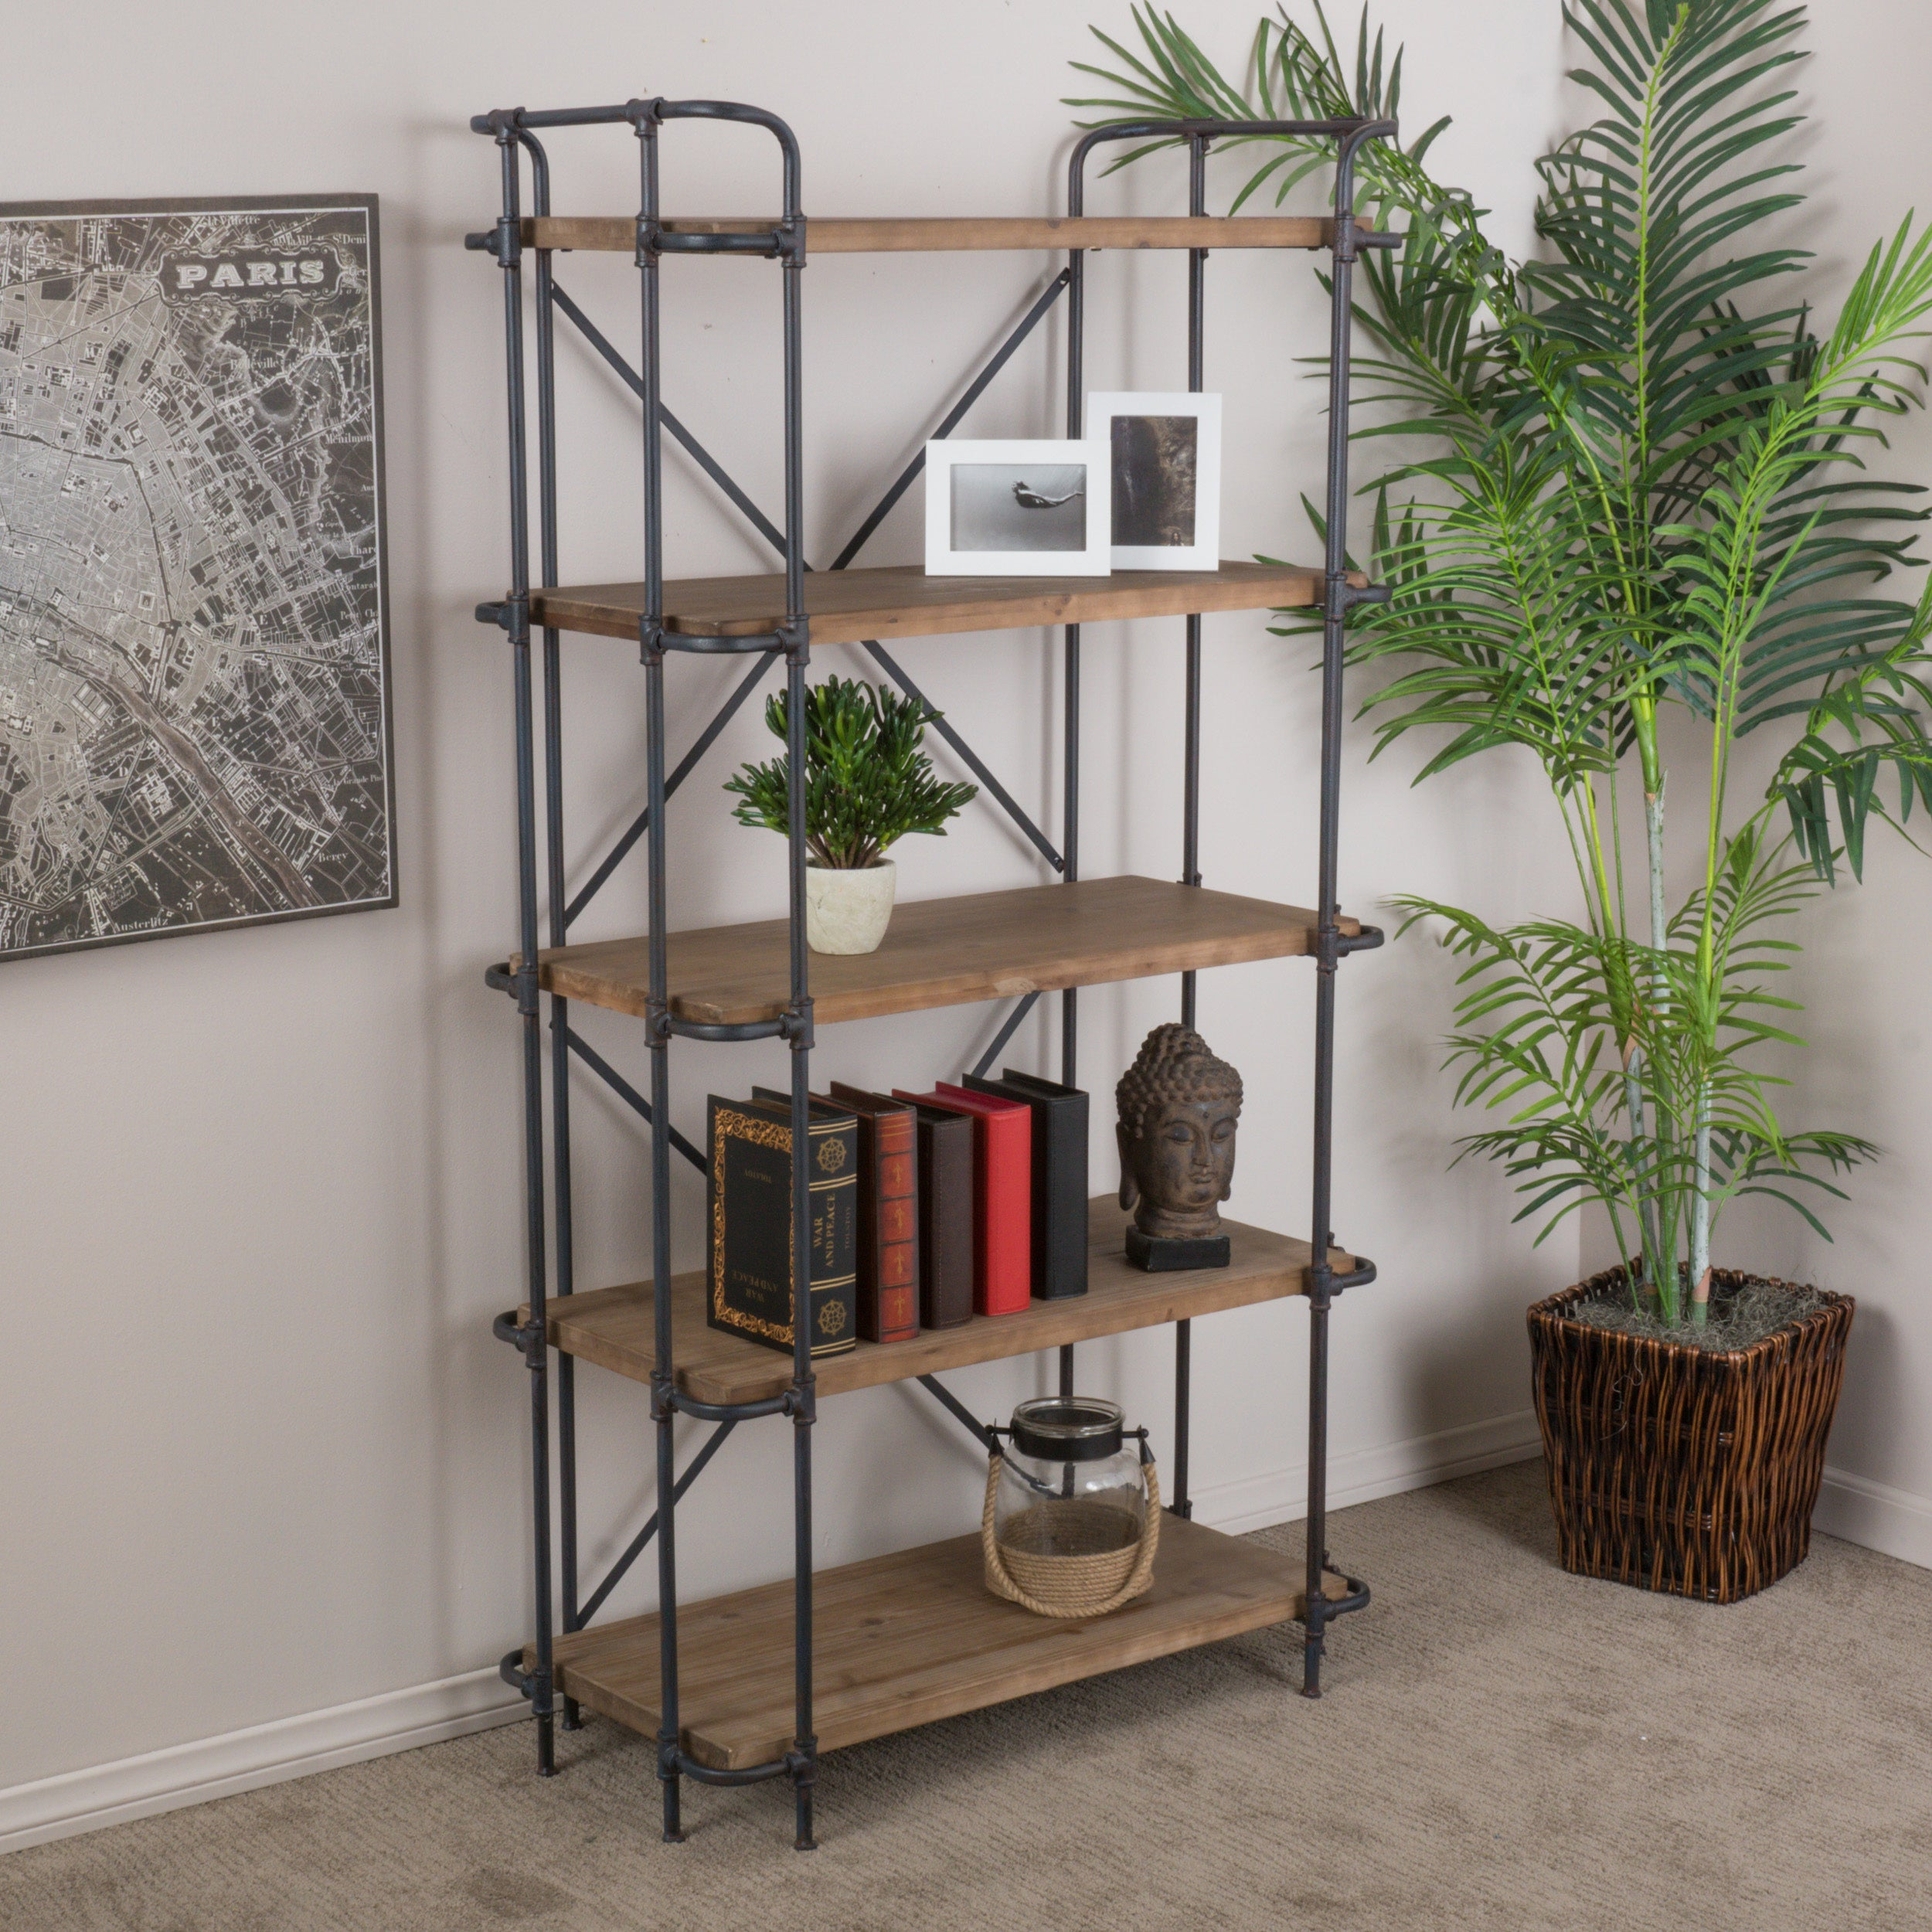 specifics storage item tier shelves unit display wooden wood bookcase shelf shelving itm bookcases